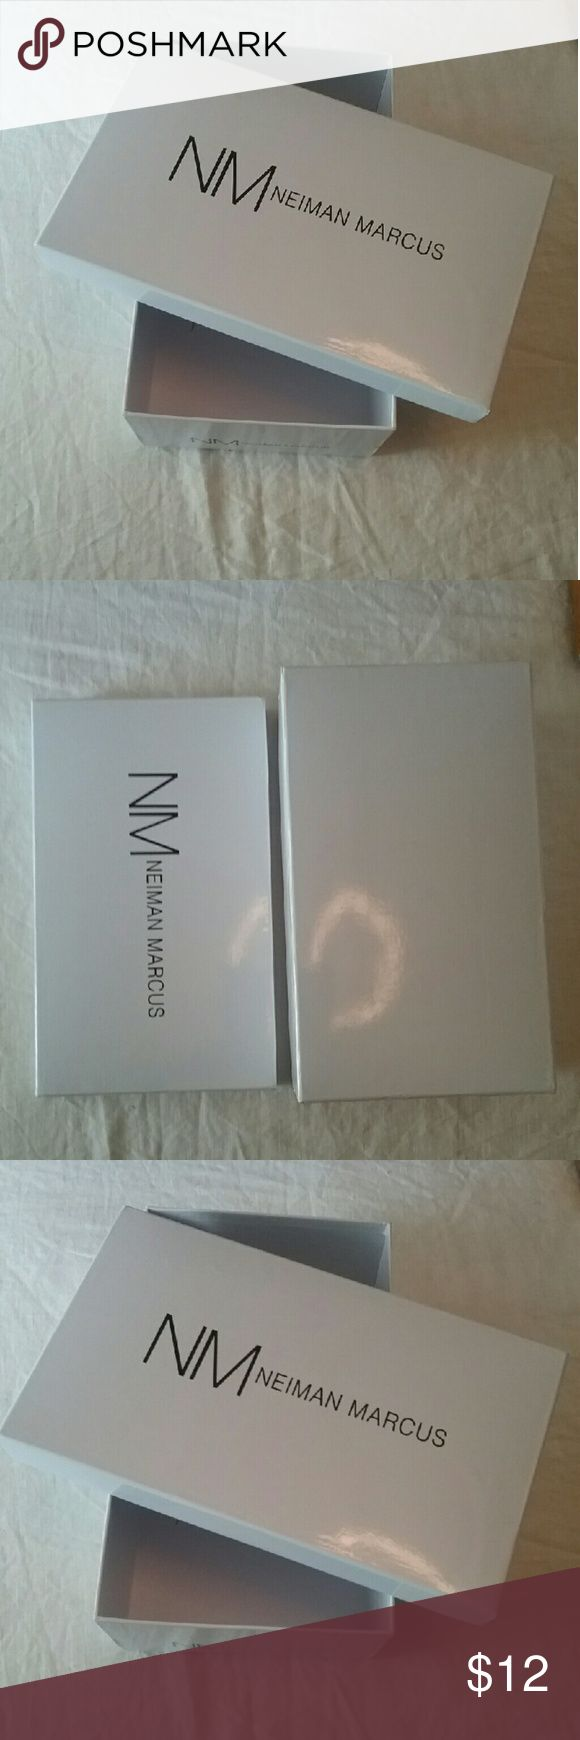 NM Neiman Marcus Empty Box NM empty shoe Box  Great condition Neiman Marcus Other